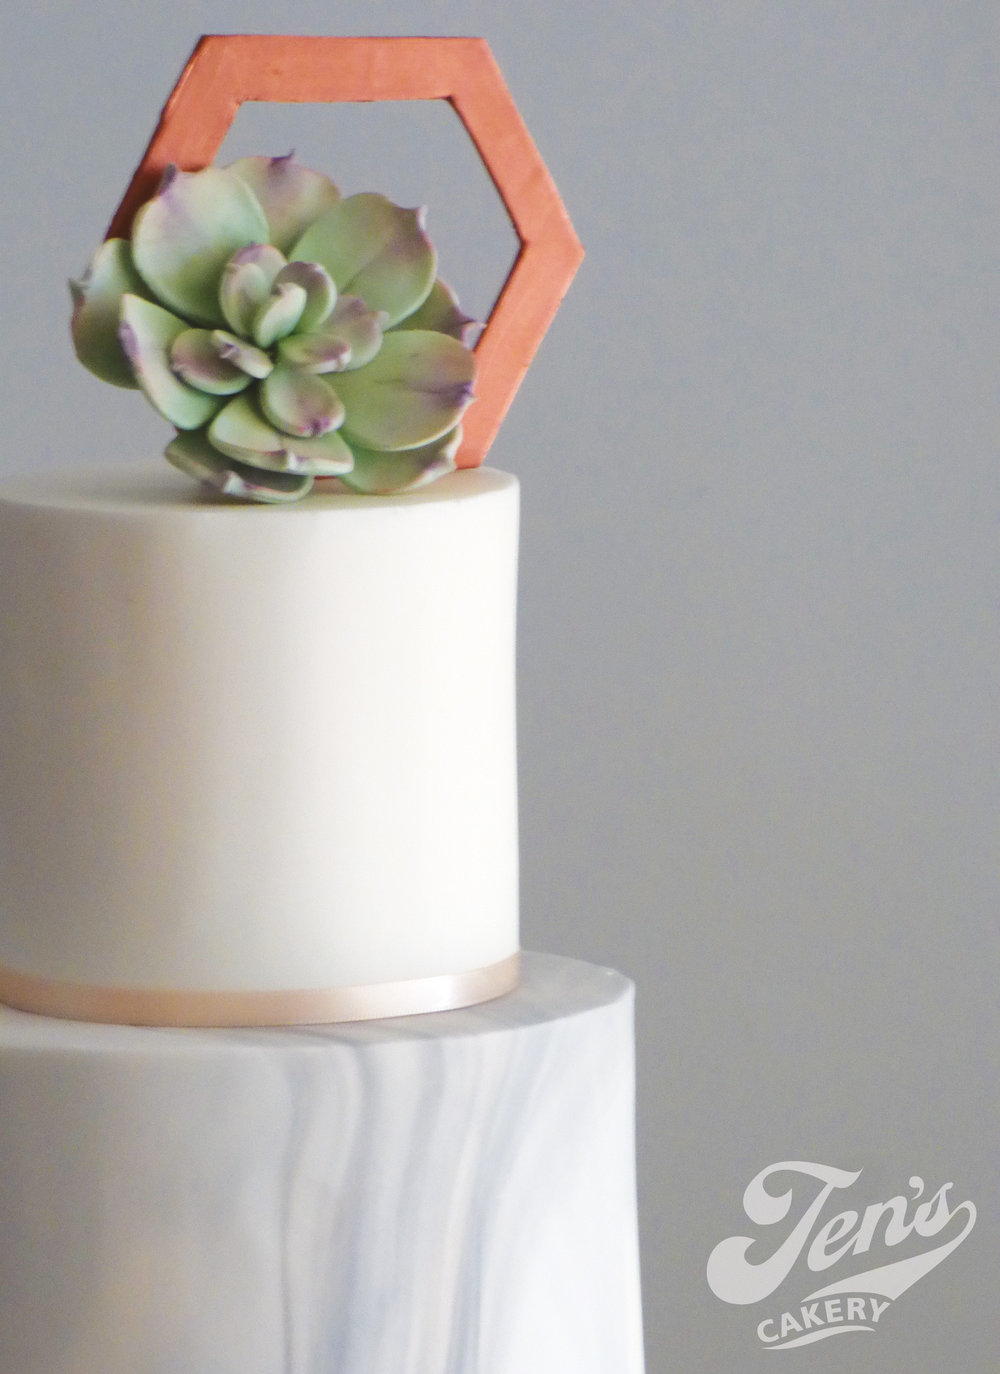 Wedding cae with copper sequins, marble and succulents. The metallic tier could also be gold, silver, bronze, or rose gold.